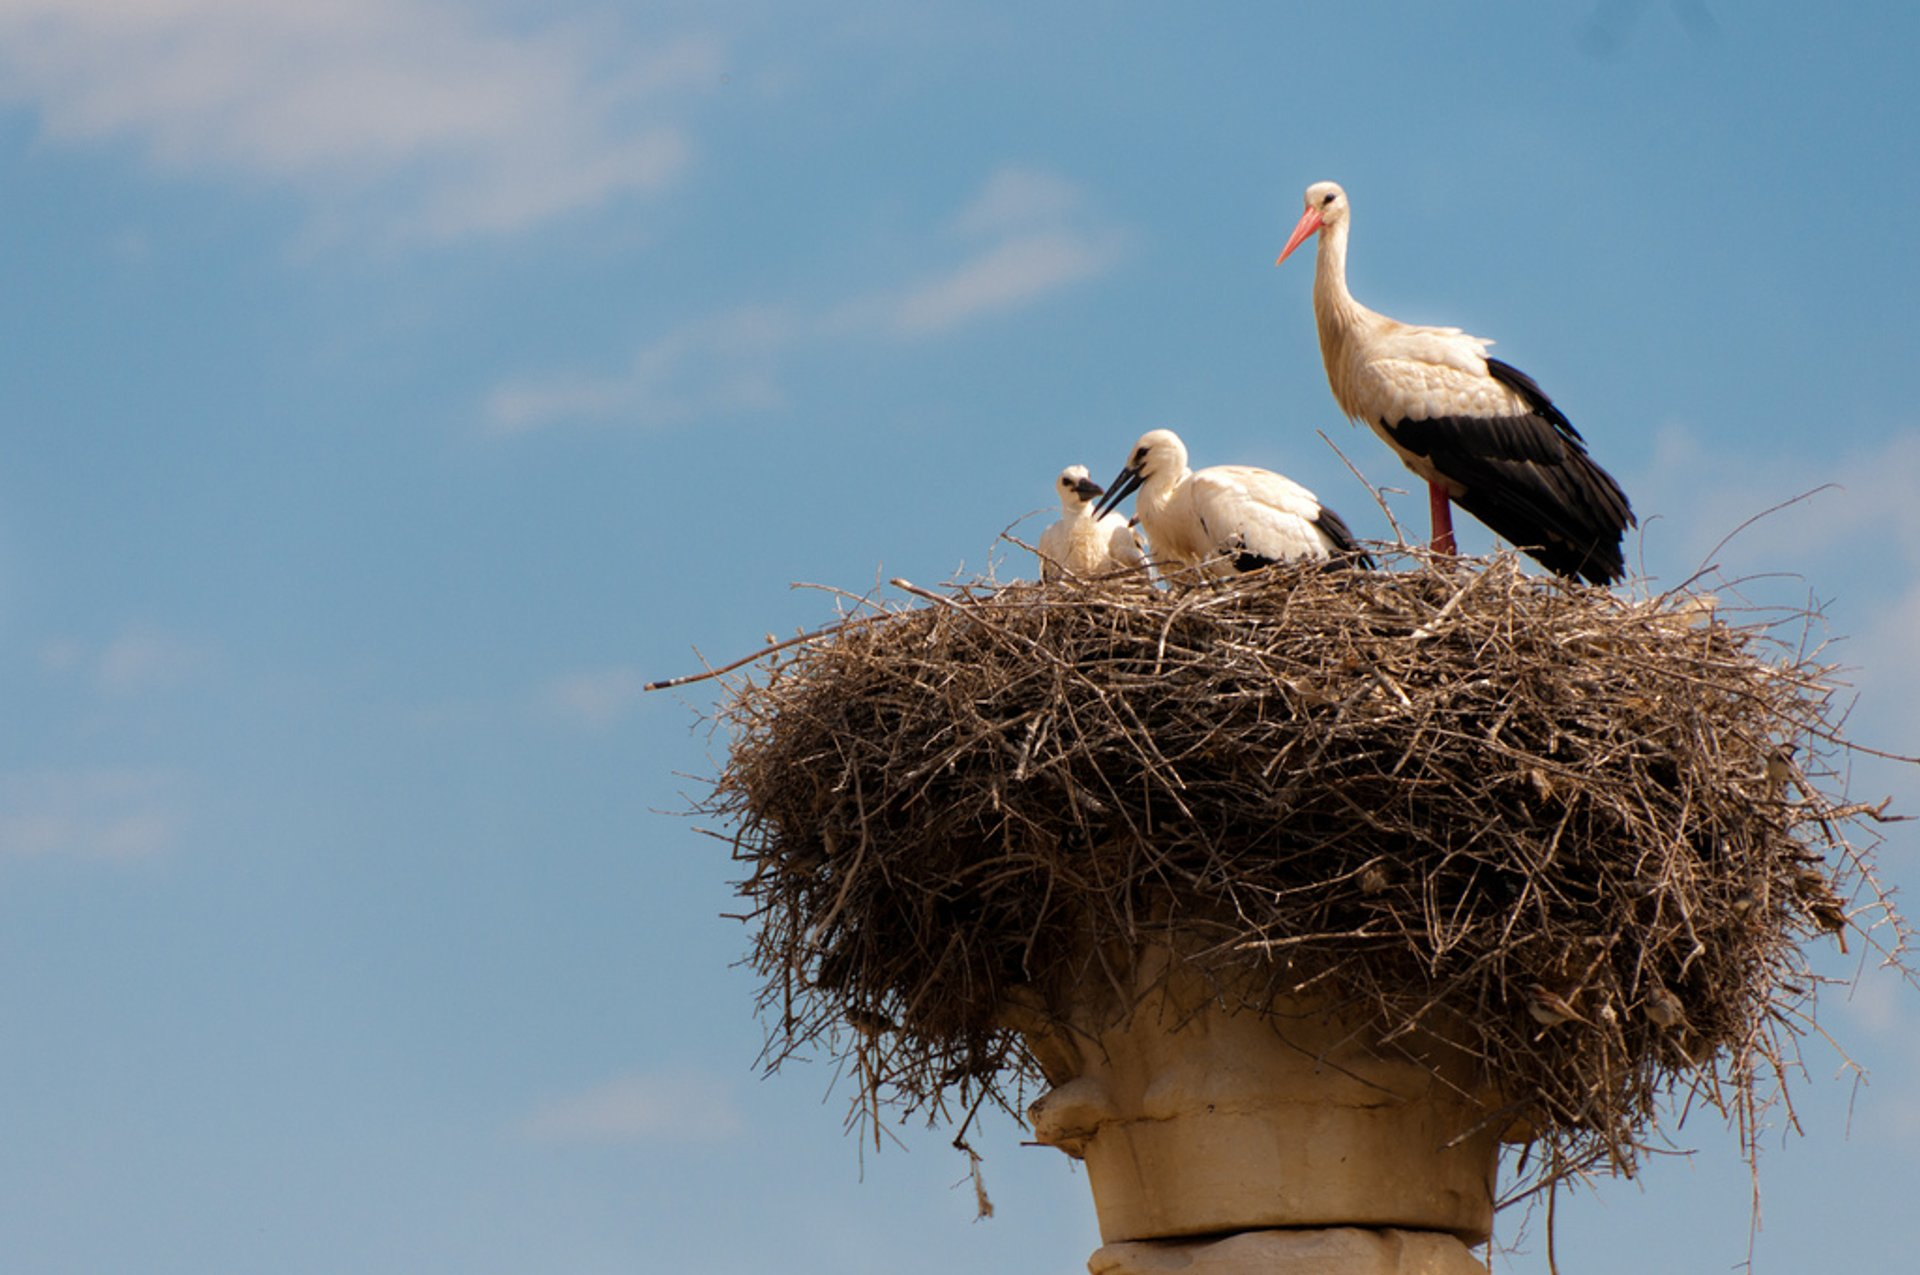 Storks of Volubilis in Morocco 2019 - Best Time